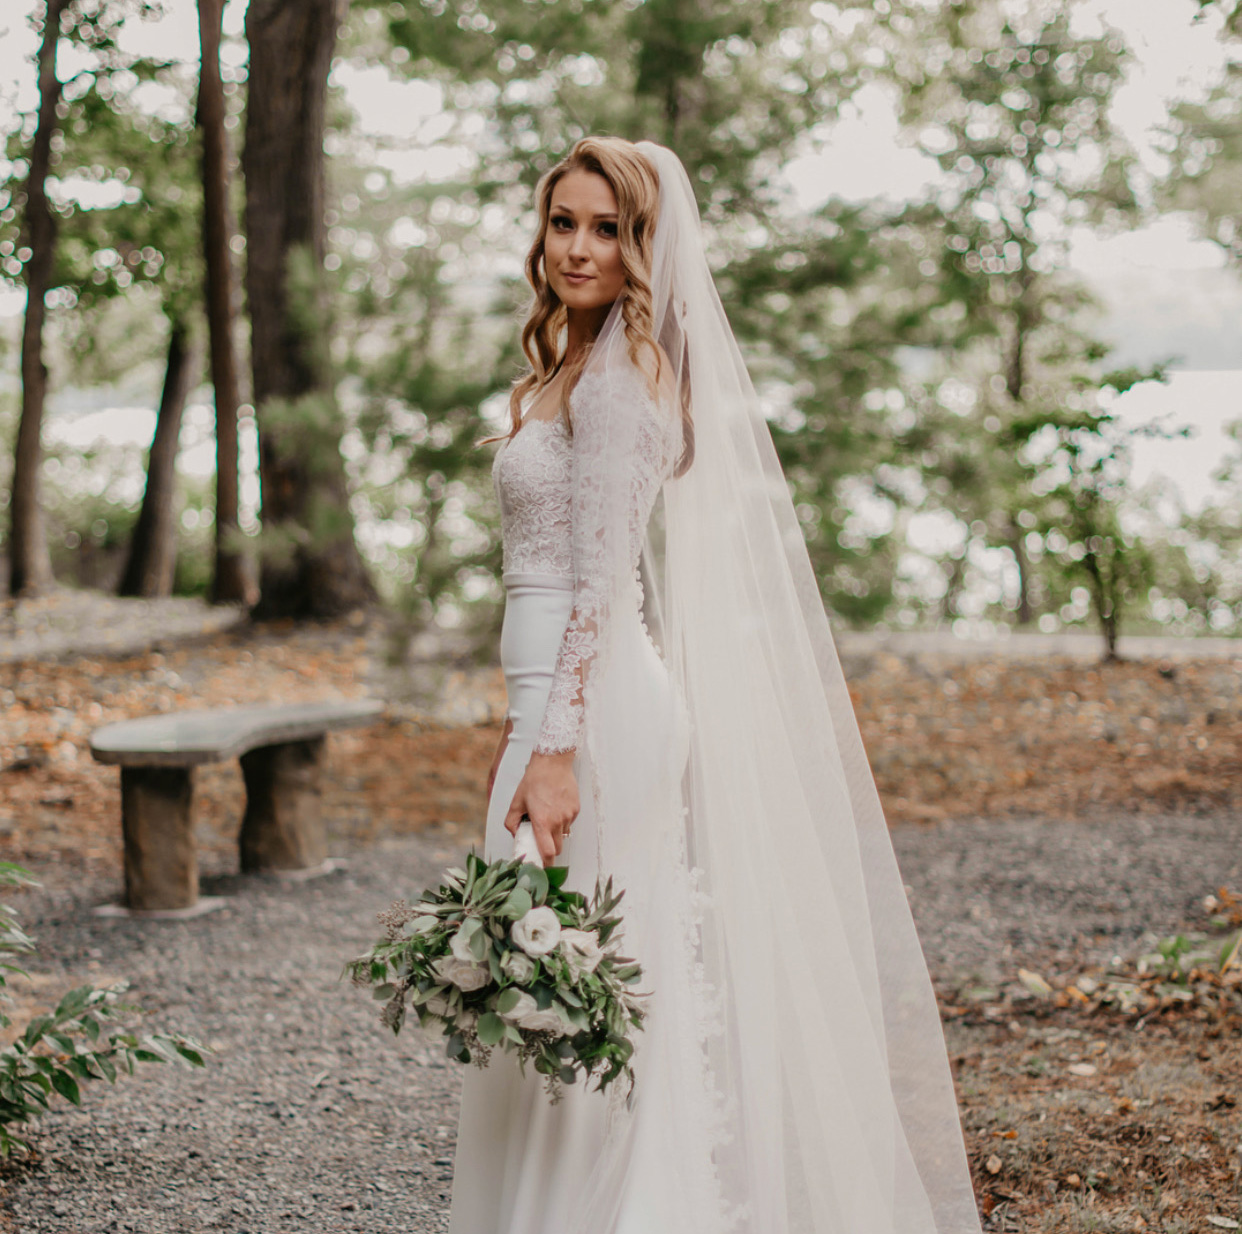 makeup-by-mehry-bridal-engagement-editorial-print-professional-makeup-course-artistry-occasion-wedding-runway-lessons-events-foxboro-6.jpg